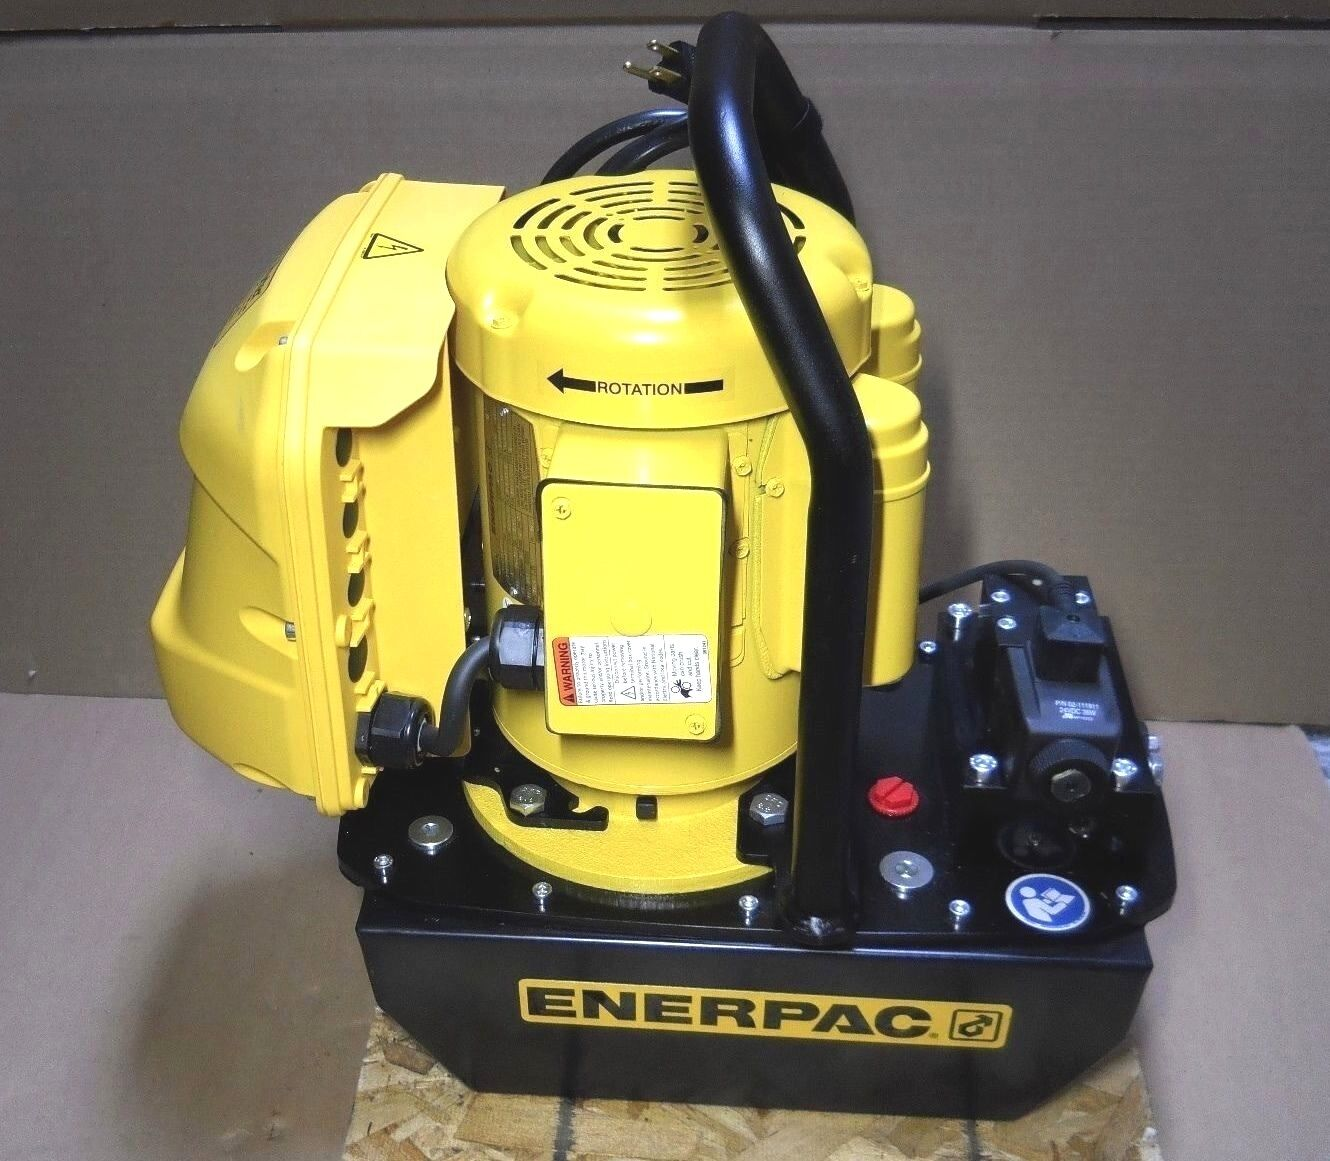 Hk Porter Enerpac Hke0751a Electric Hydraulic Pump 1 Hp Max Psi 7800 Wiring Diagram Norton Secured Powered By Verisign